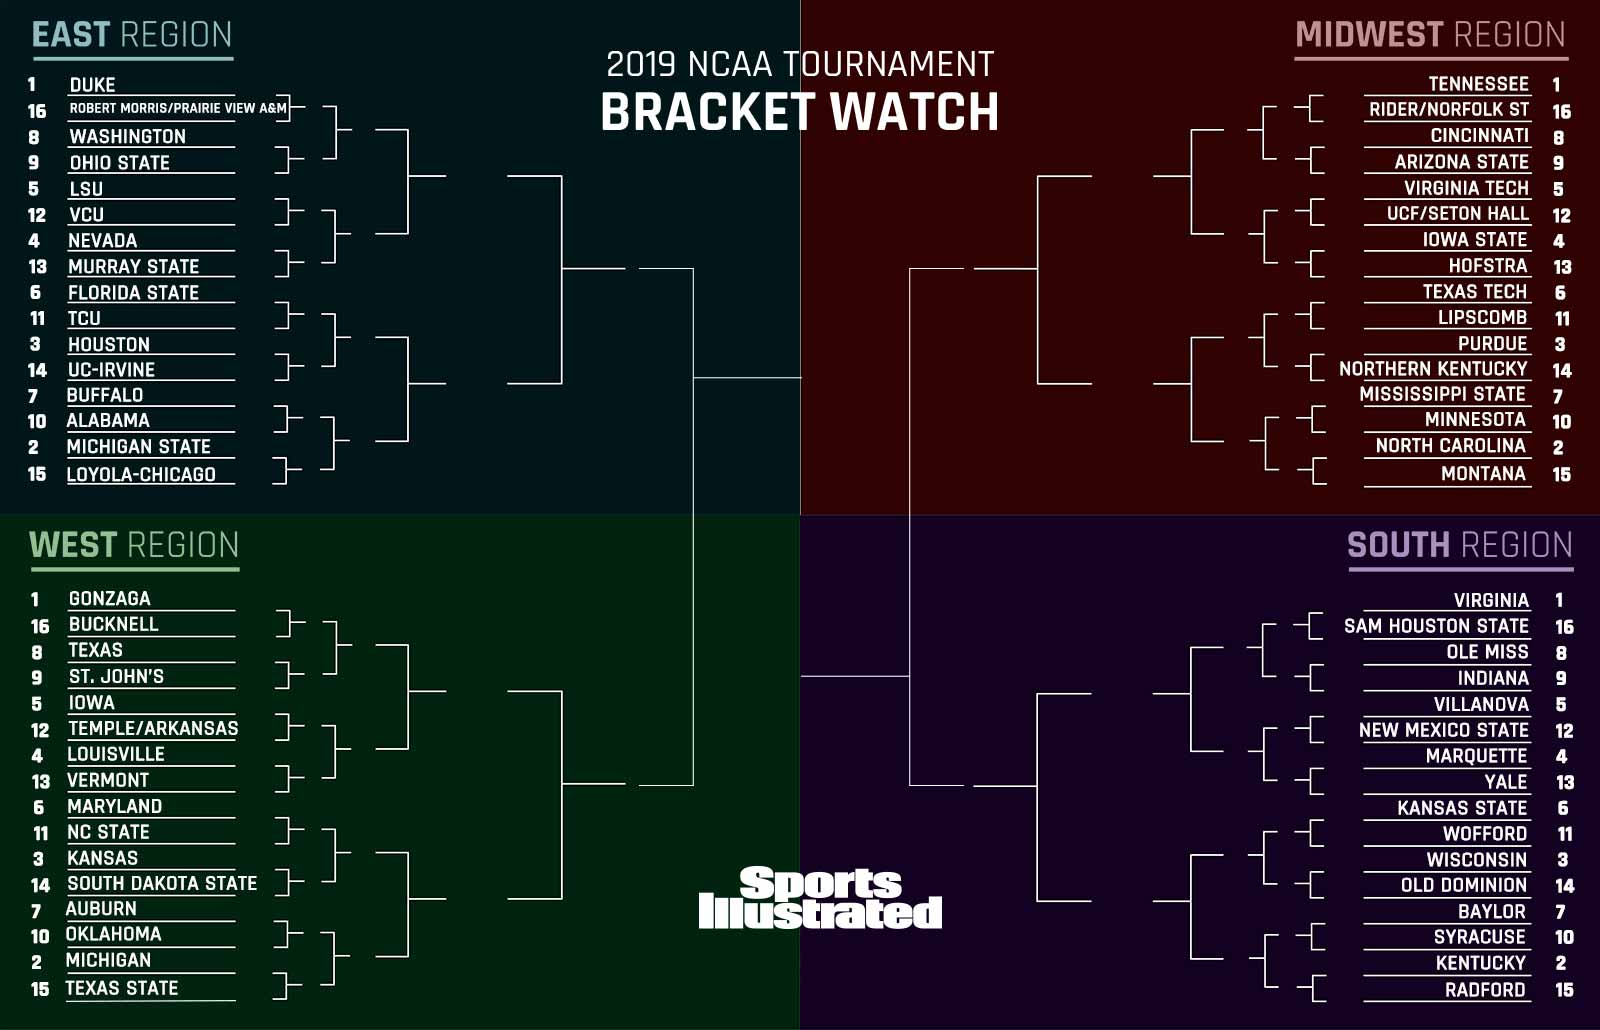 Full SI NCAA Tournament Bracket Watch As Of Feb 7